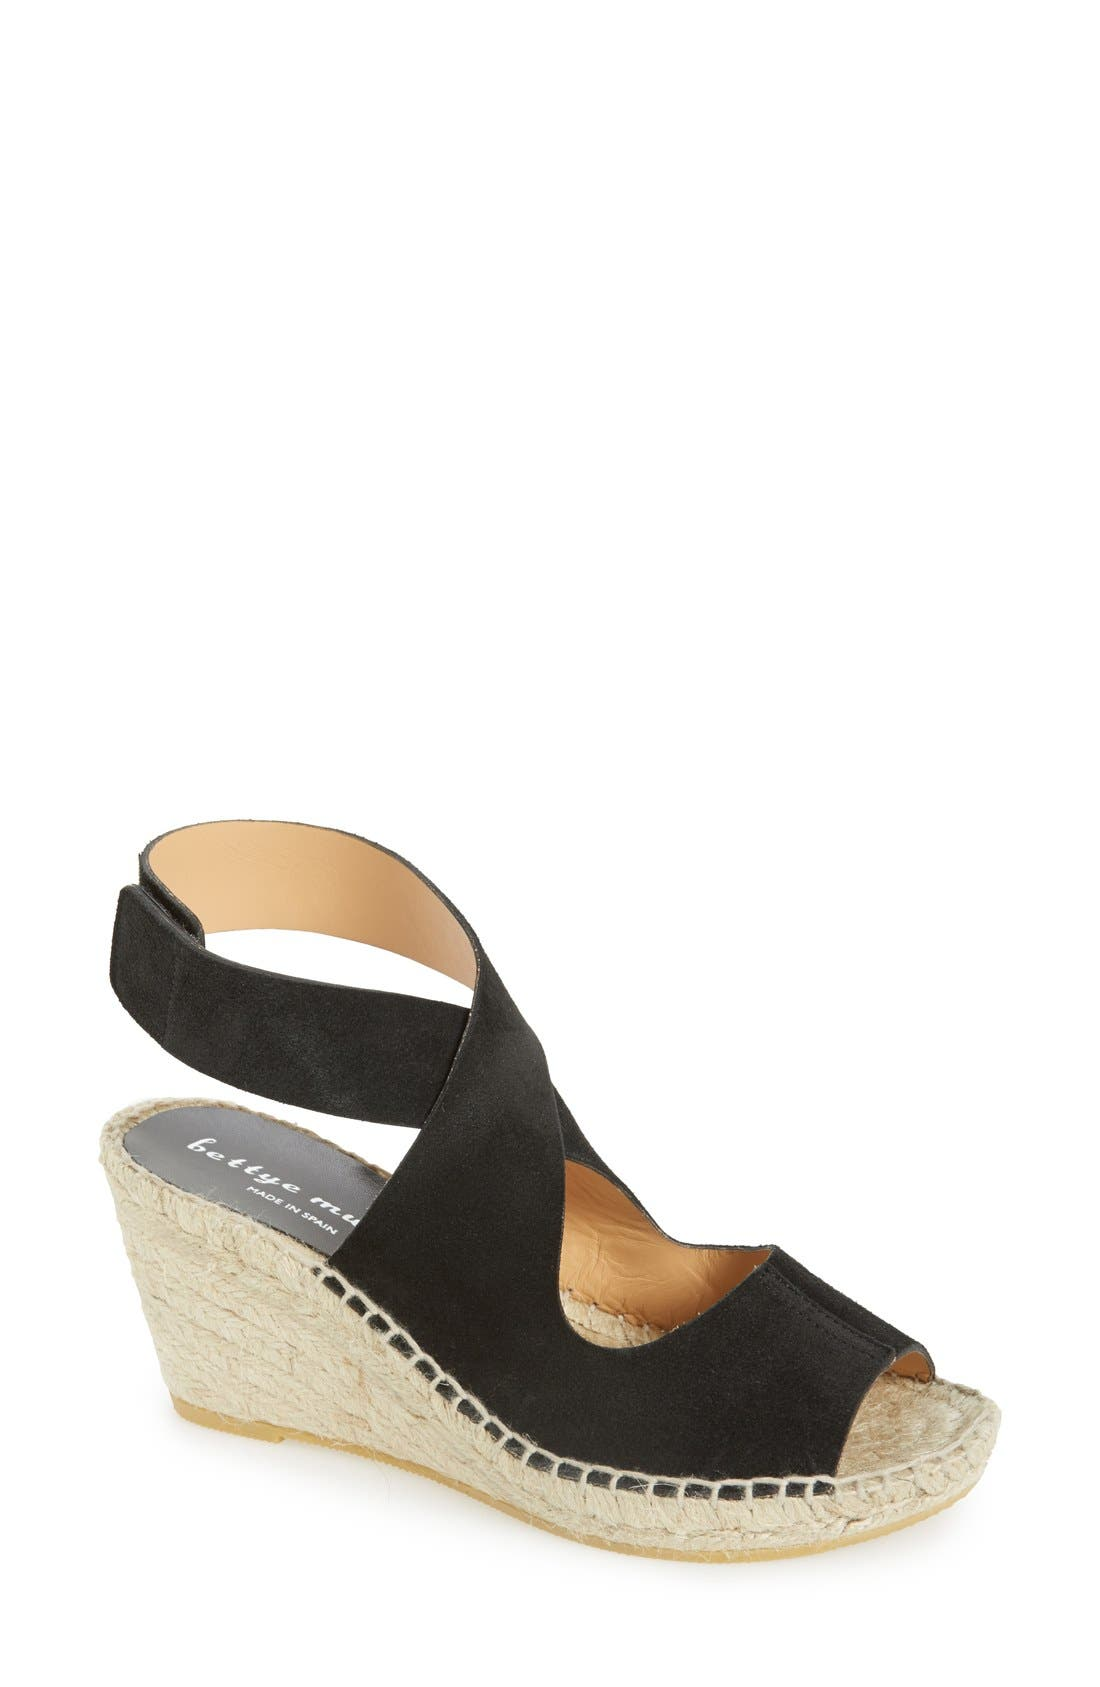 BETTYE MULLER 'Mobile' Leather Wedge Espadrille Sandal